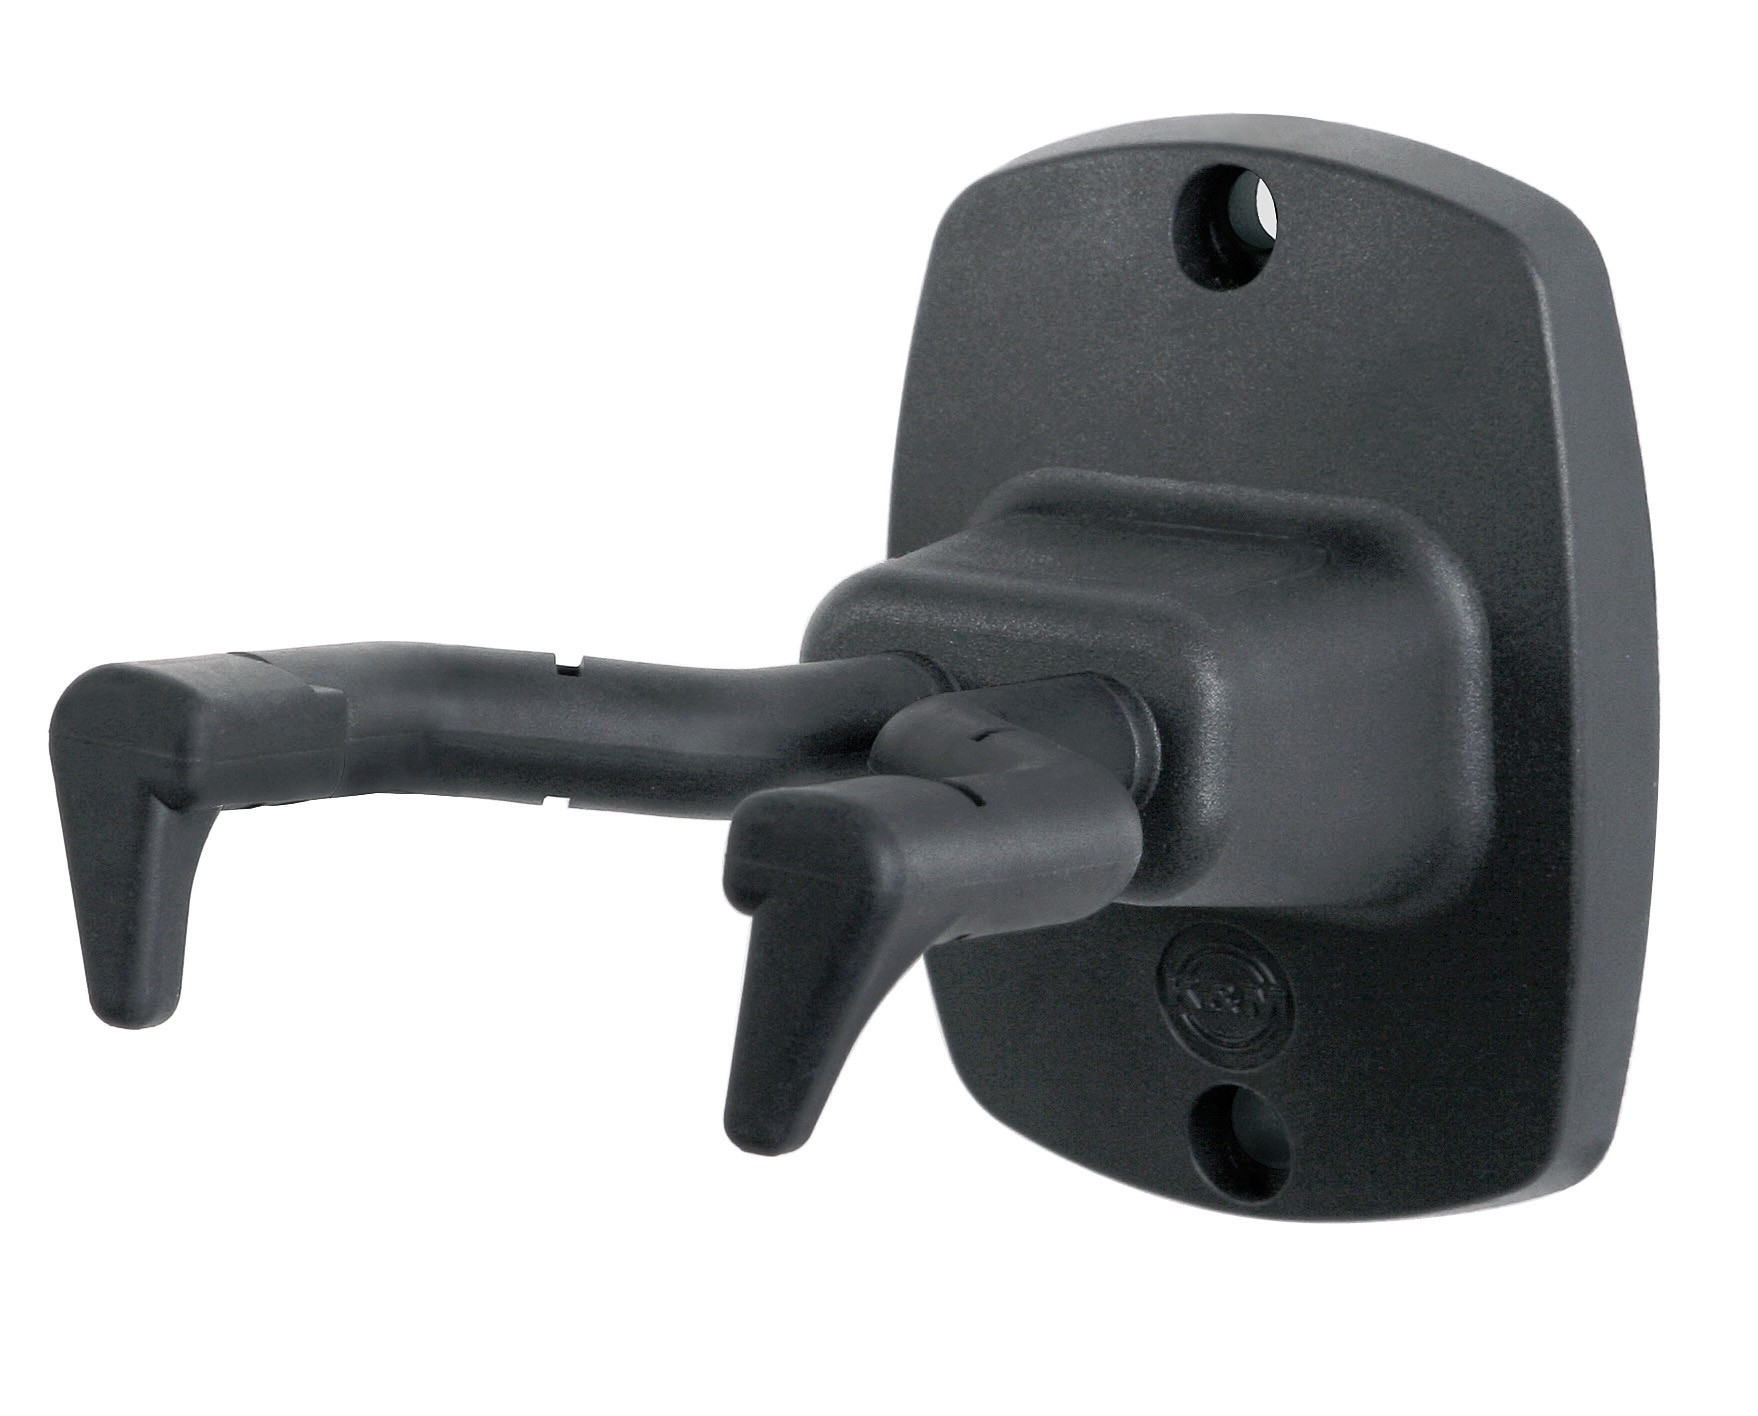 Konig & Meyer 16240 Guitar Wall Mount